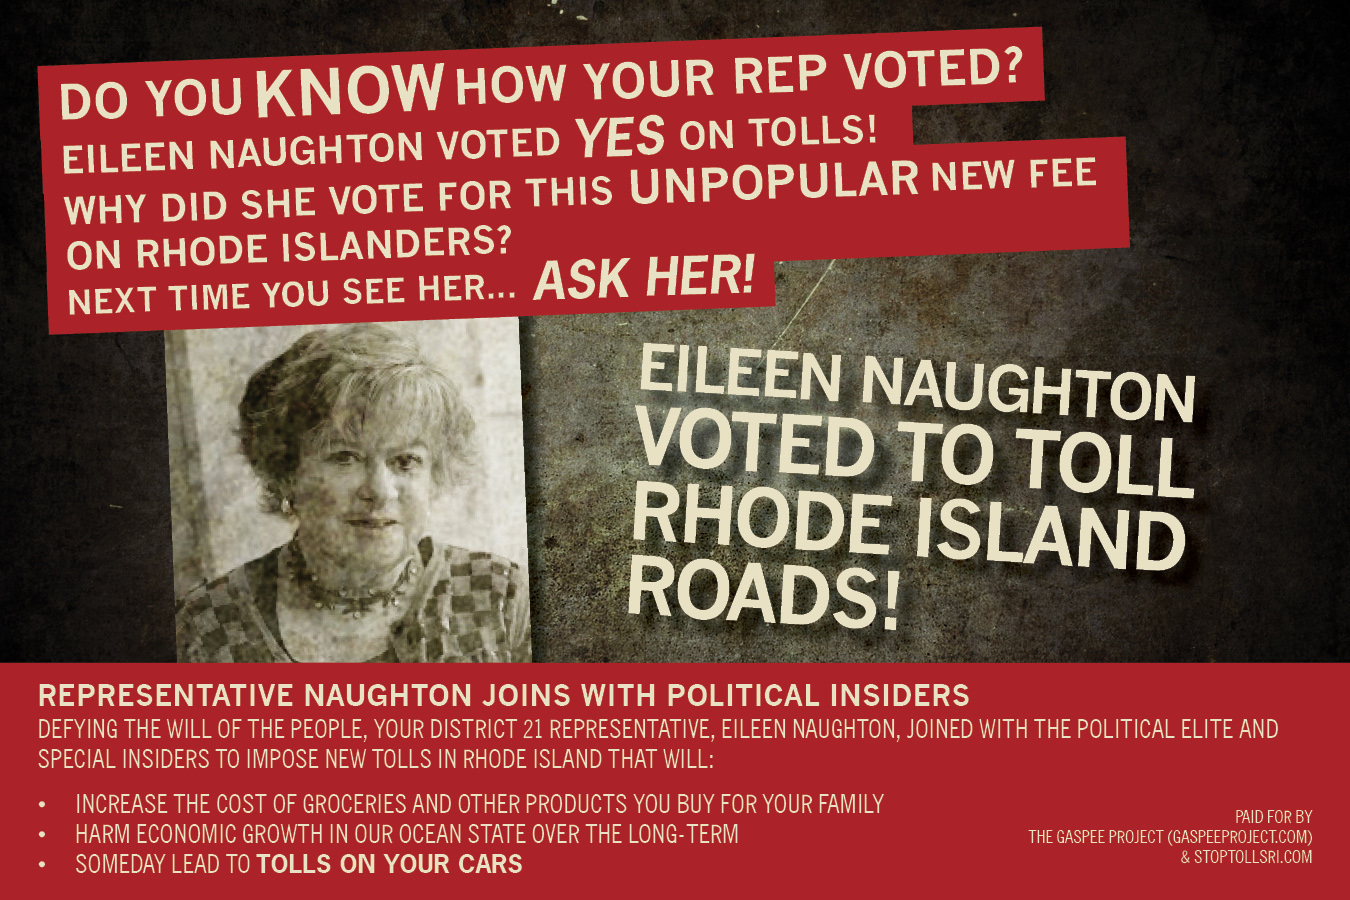 Eileen Naughton Ousted Out of the Rhode Island General Assebly